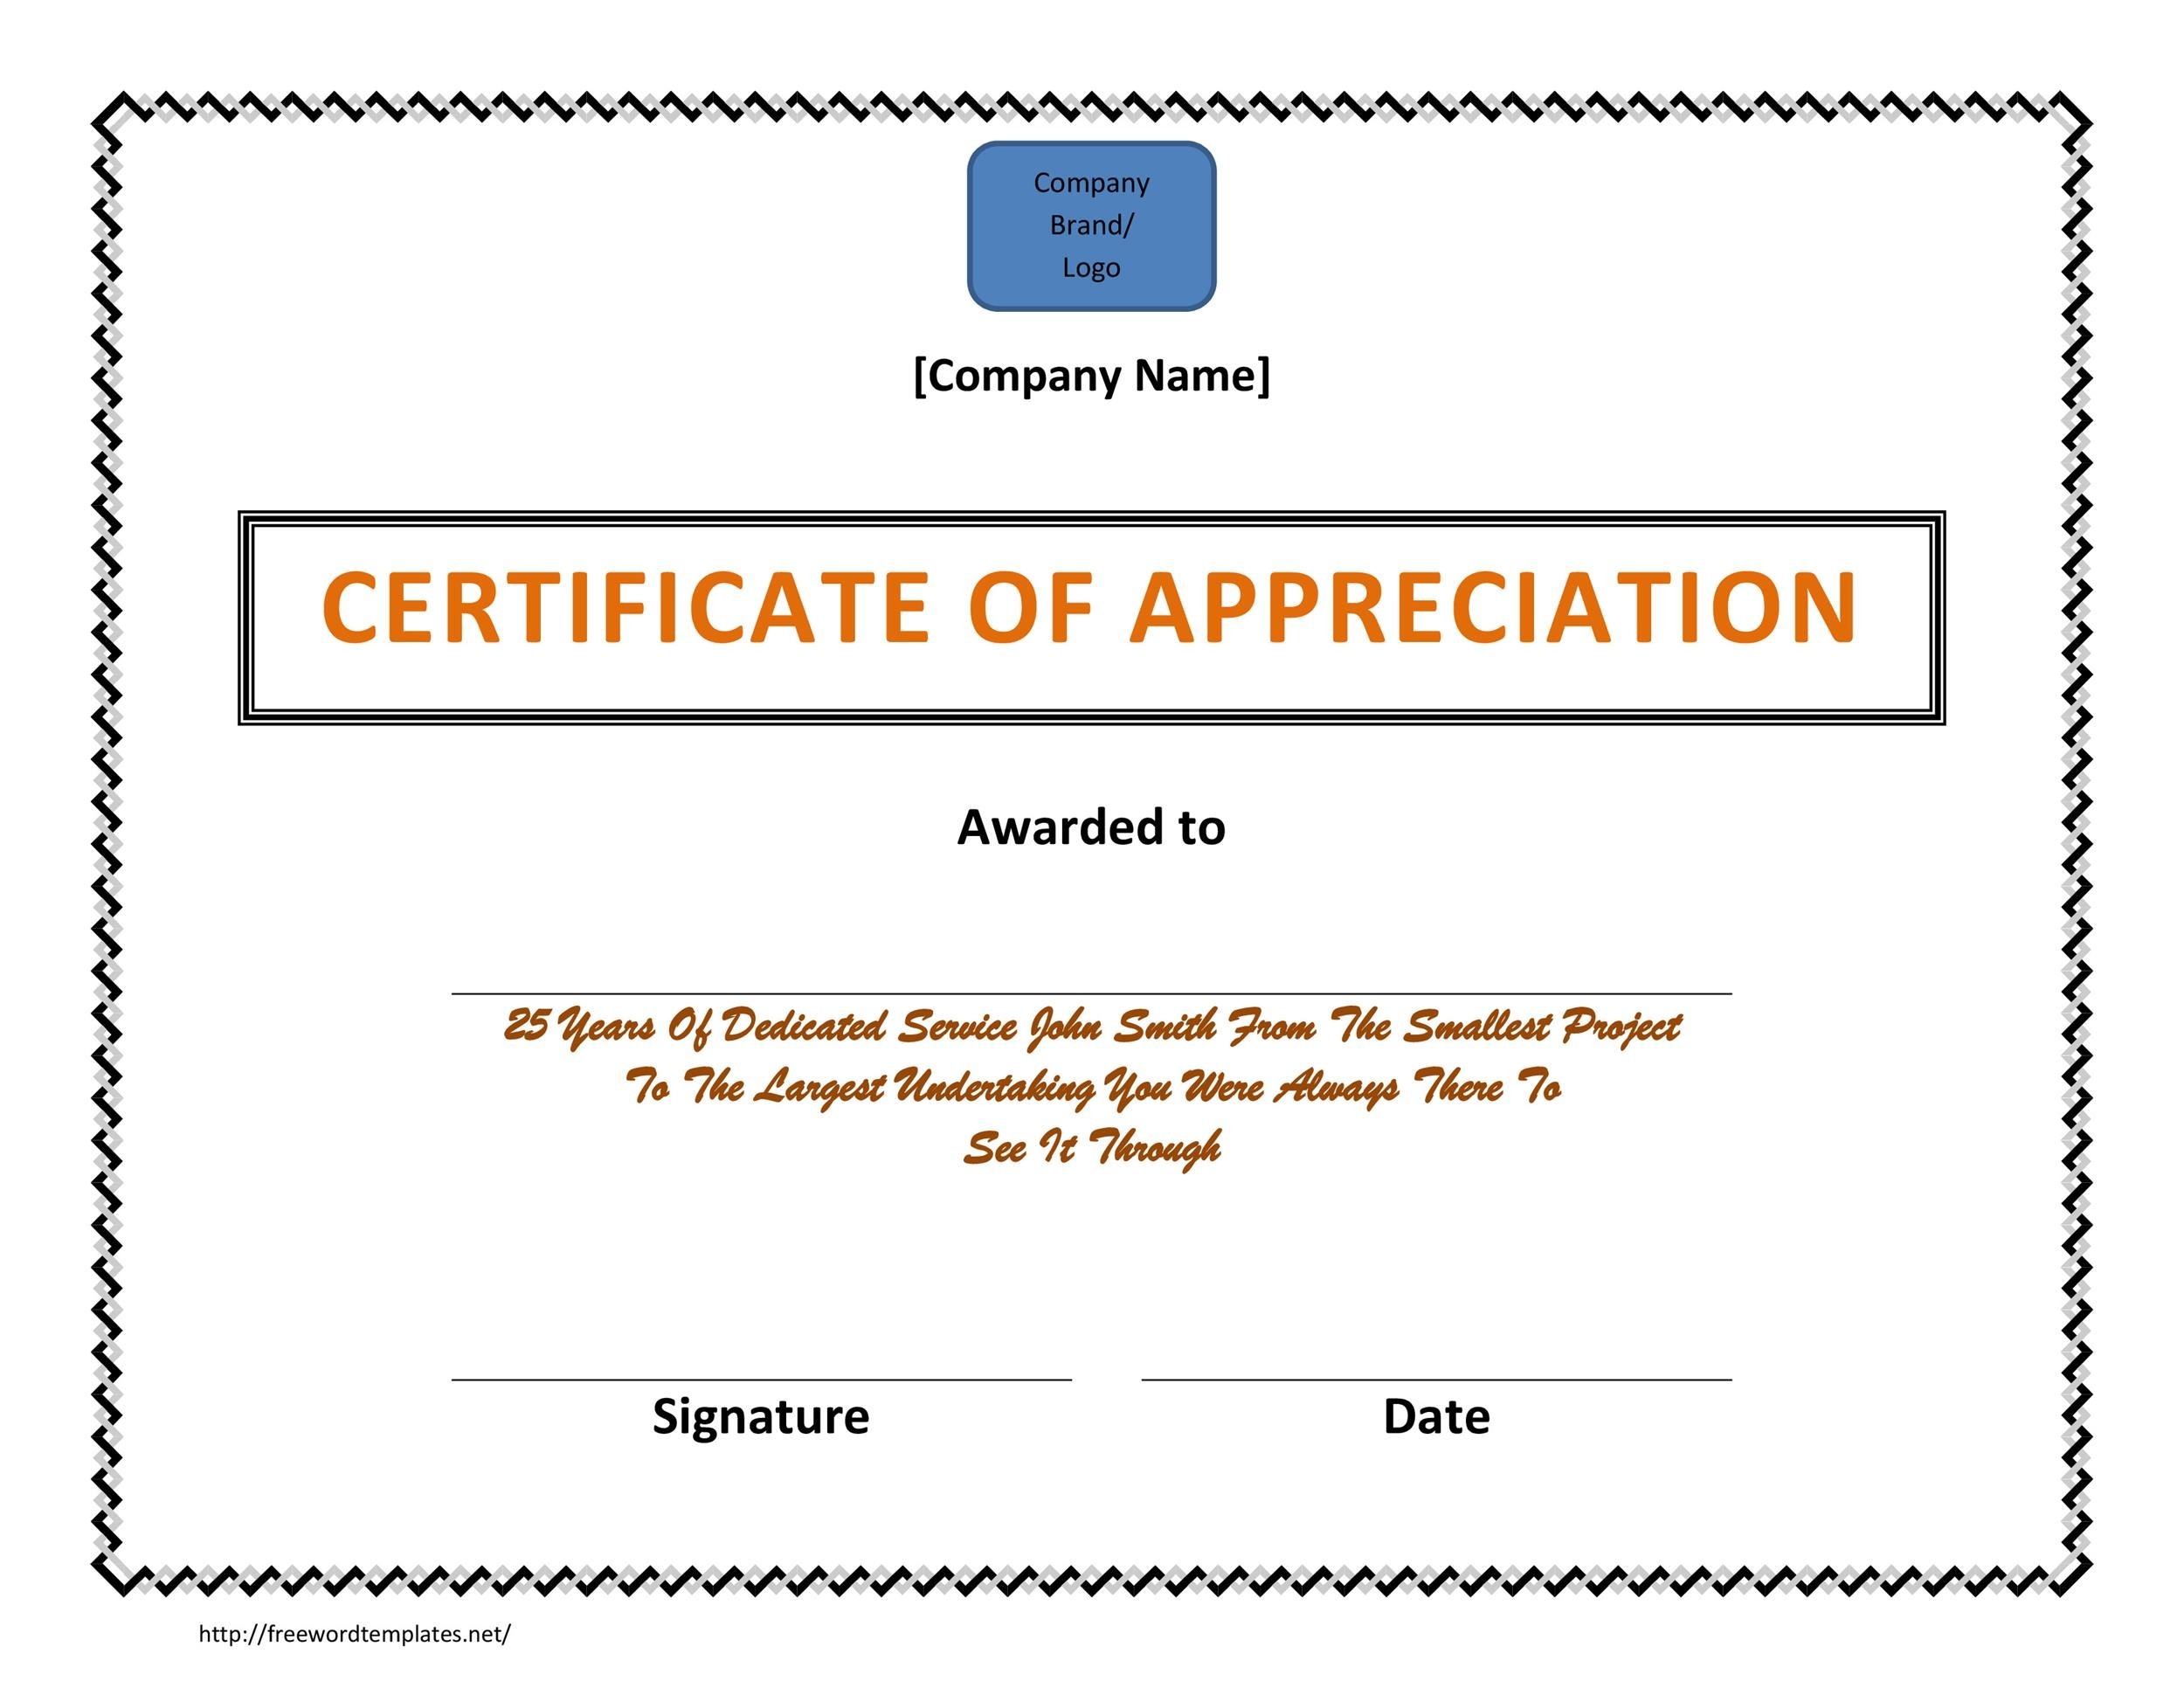 30 free certificate of appreciation templates and letters free certificate of appreciation 05 spiritdancerdesigns Image collections